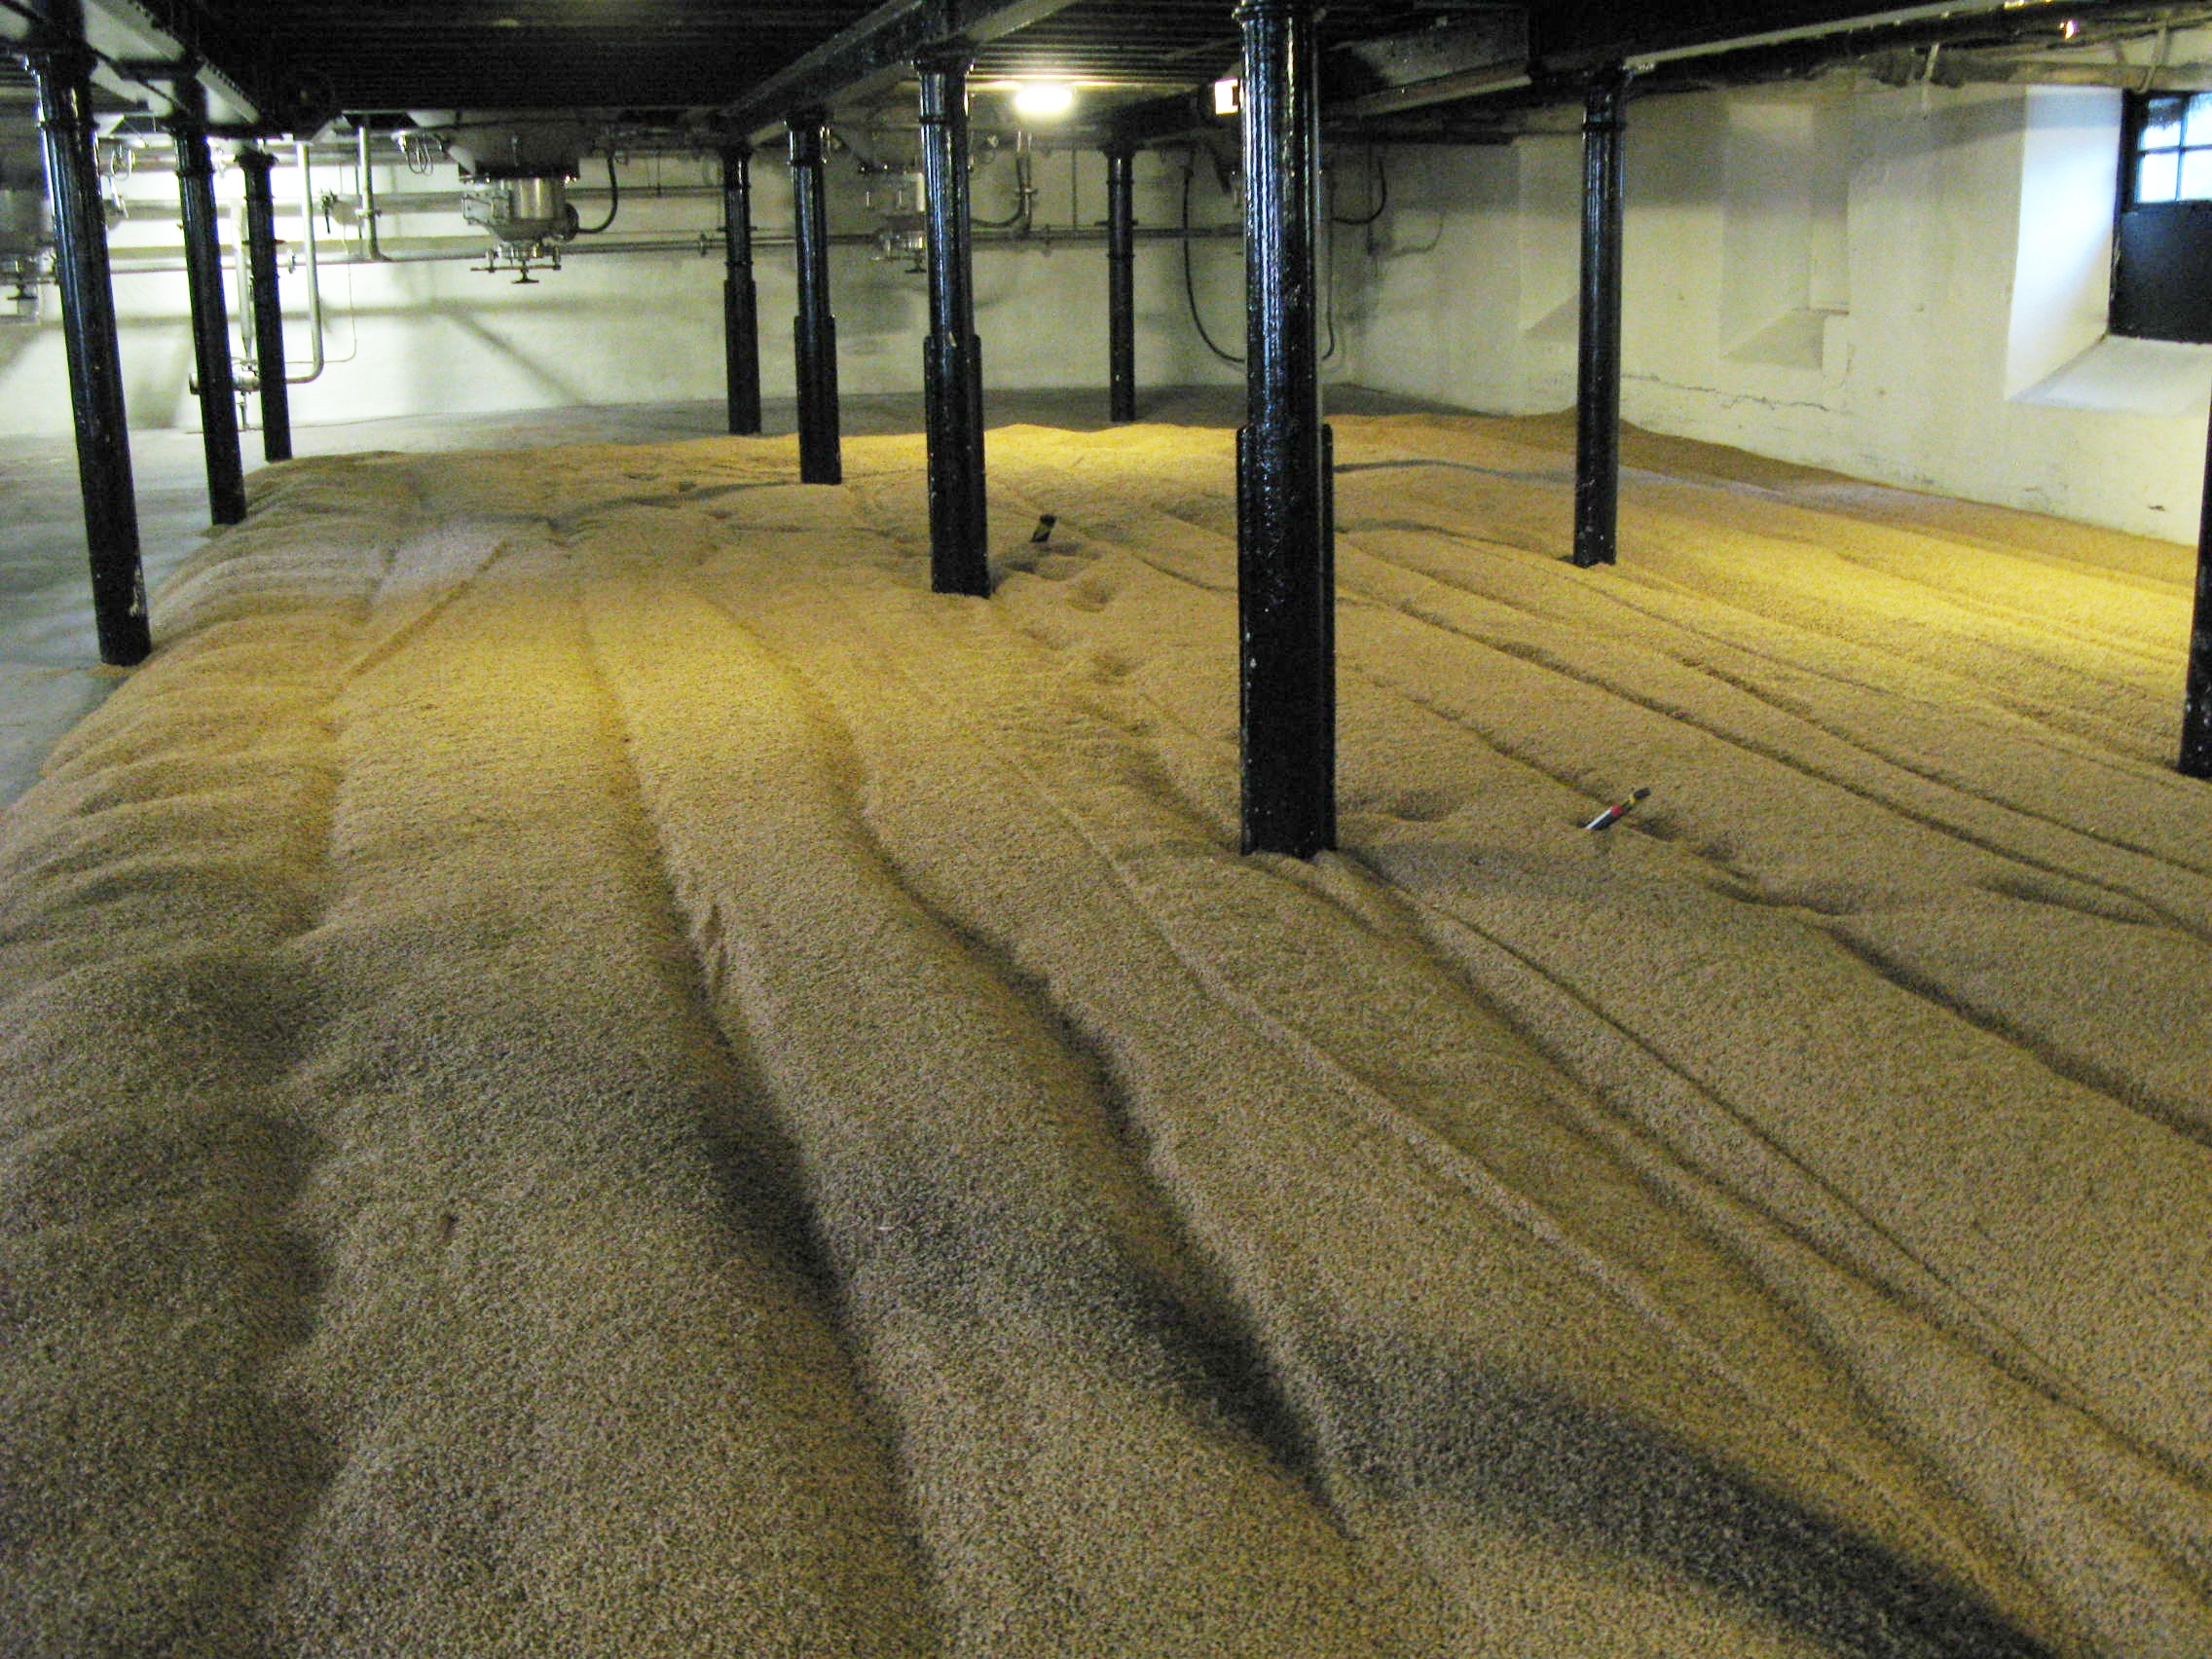 A malting floor, covered in grains of germinating barley